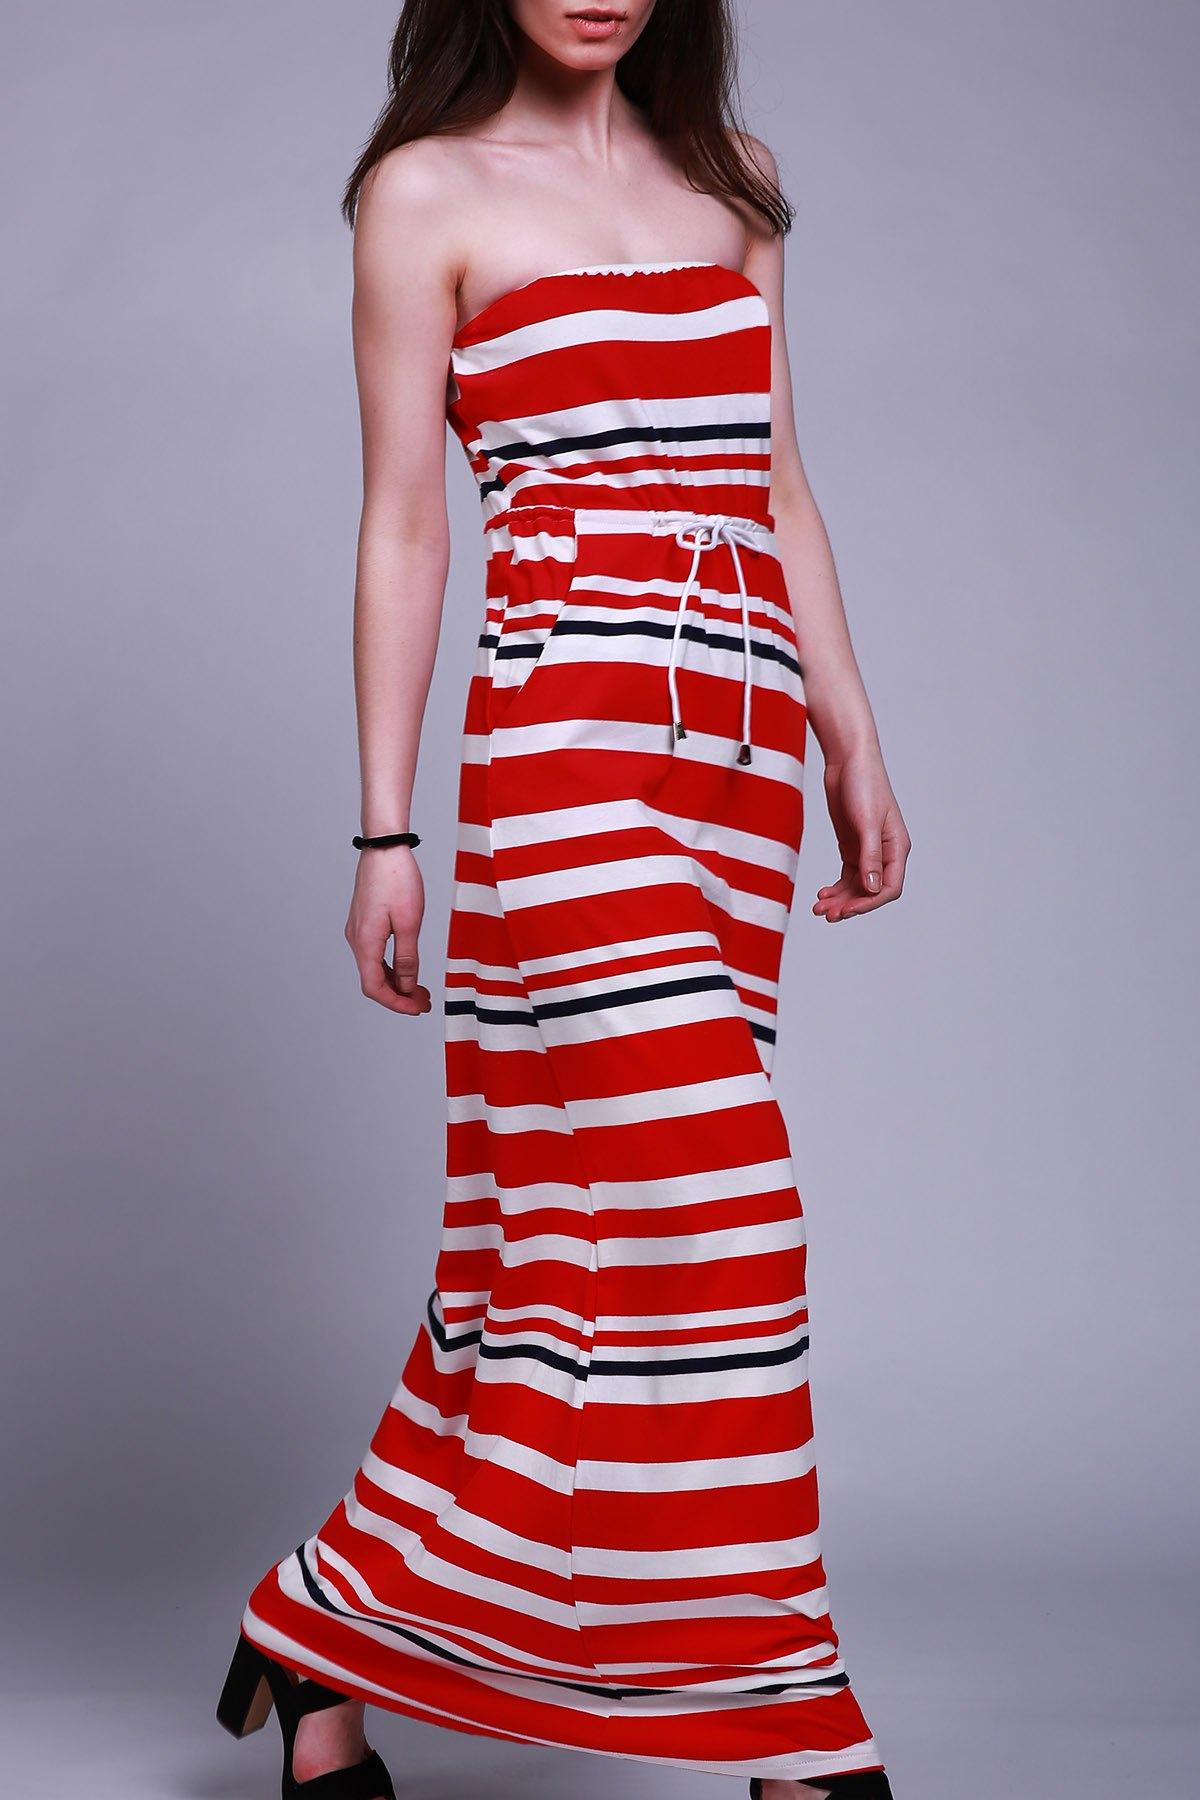 Stylish Women's Strapless Striped Drawstring Maxi Dress - RED S